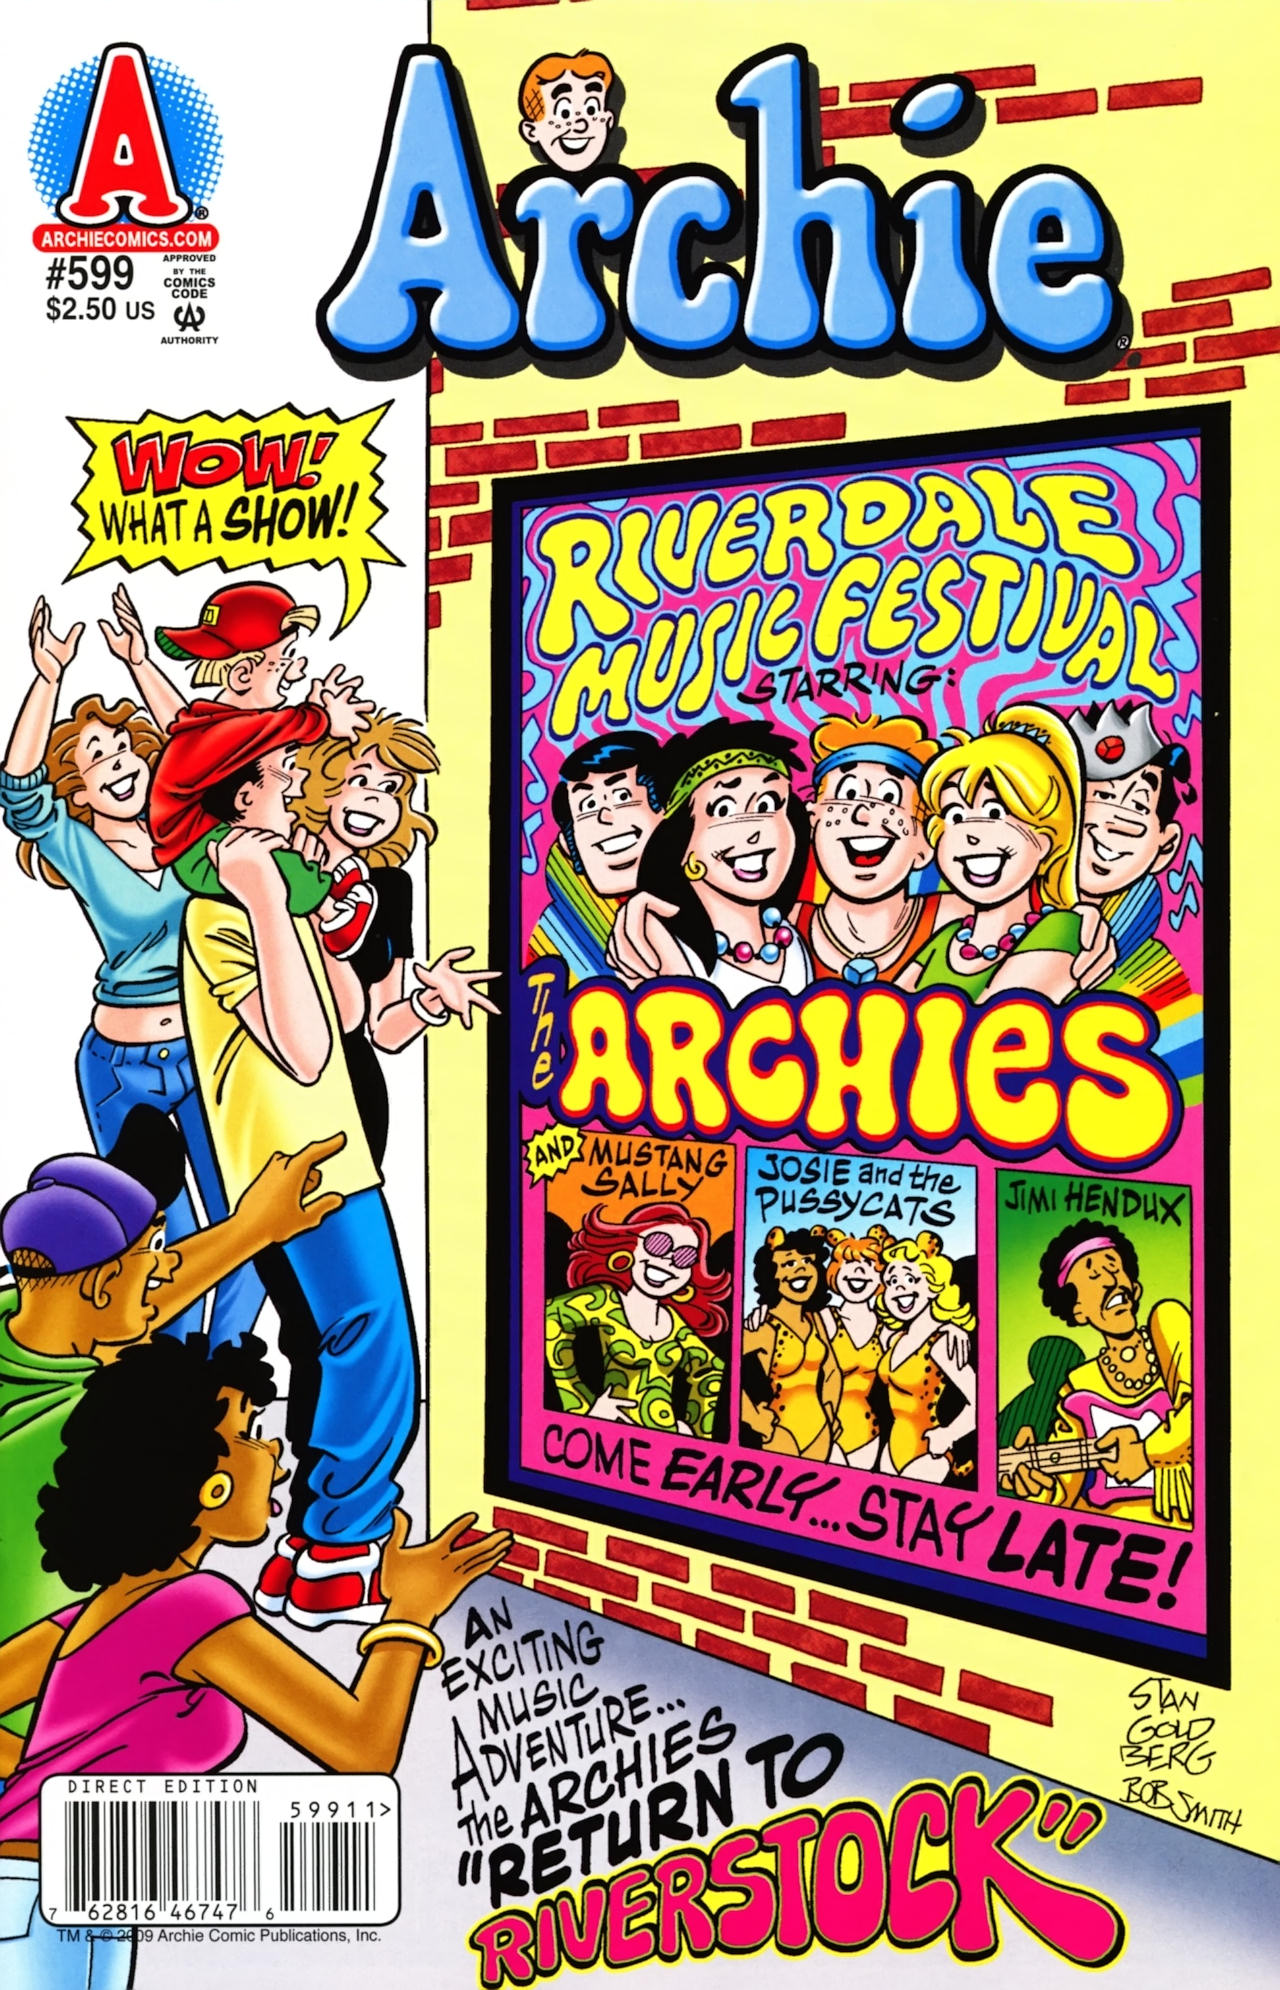 Read online Archie (1960) comic -  Issue #599 - 1